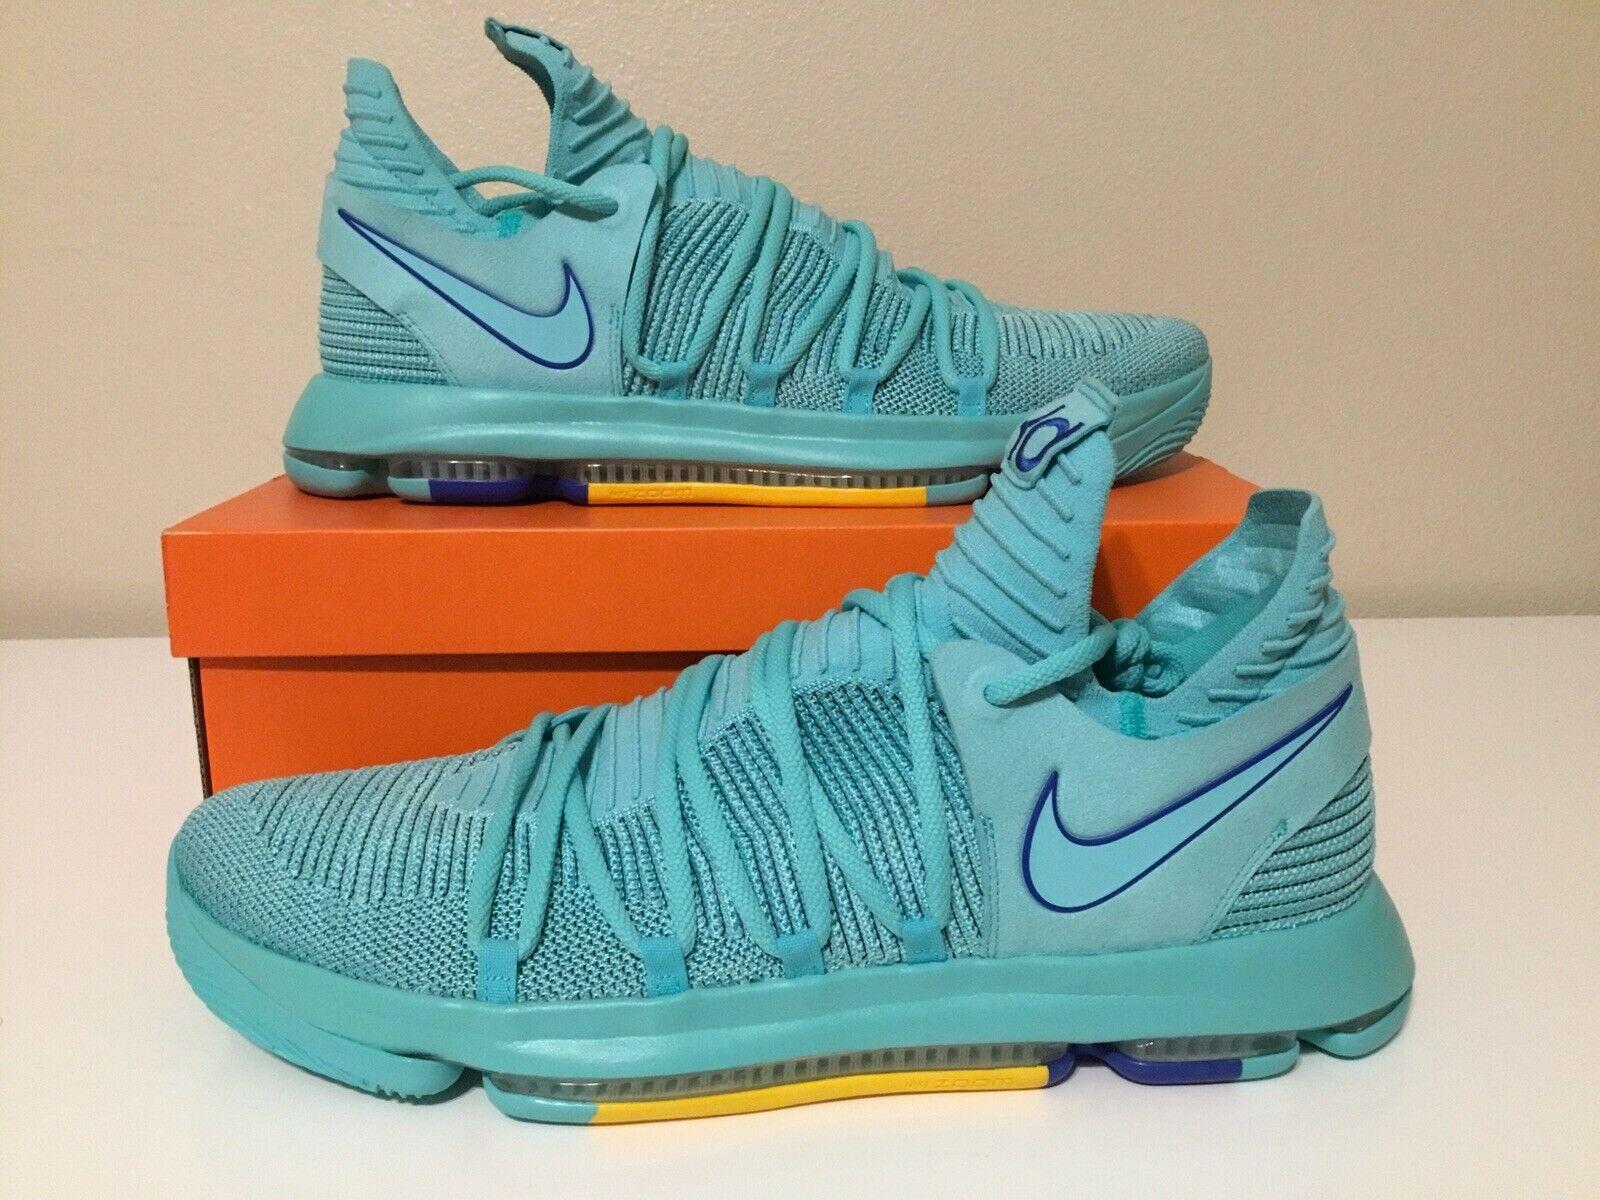 Nike Zoom KD 10 HYPER Turquoise Durant